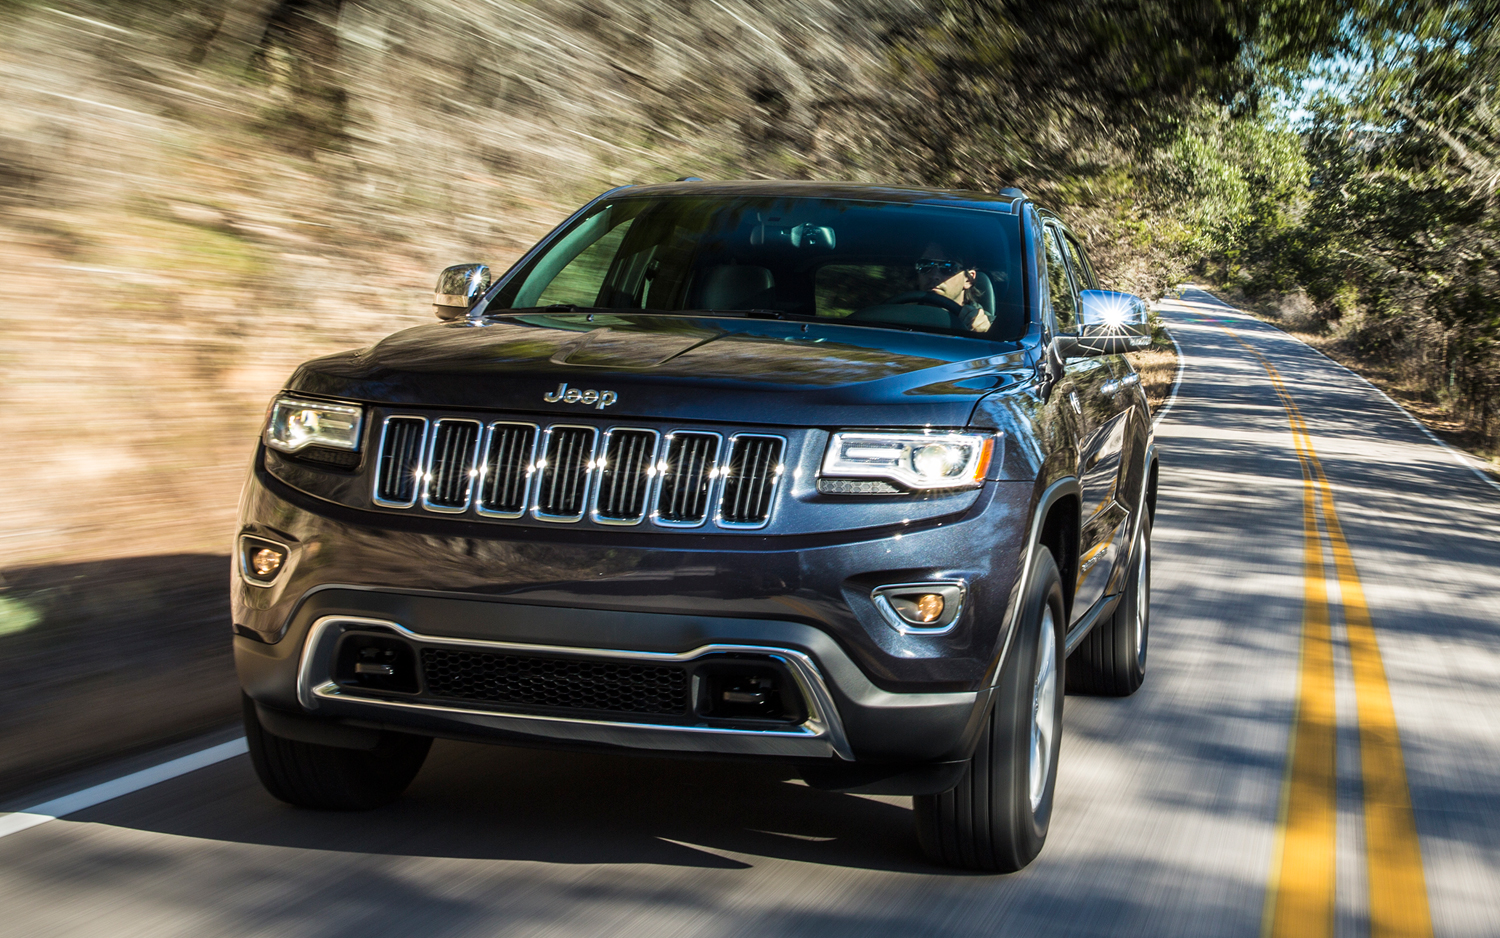 jeep 2014 Compass feeling better on rough terrain #3